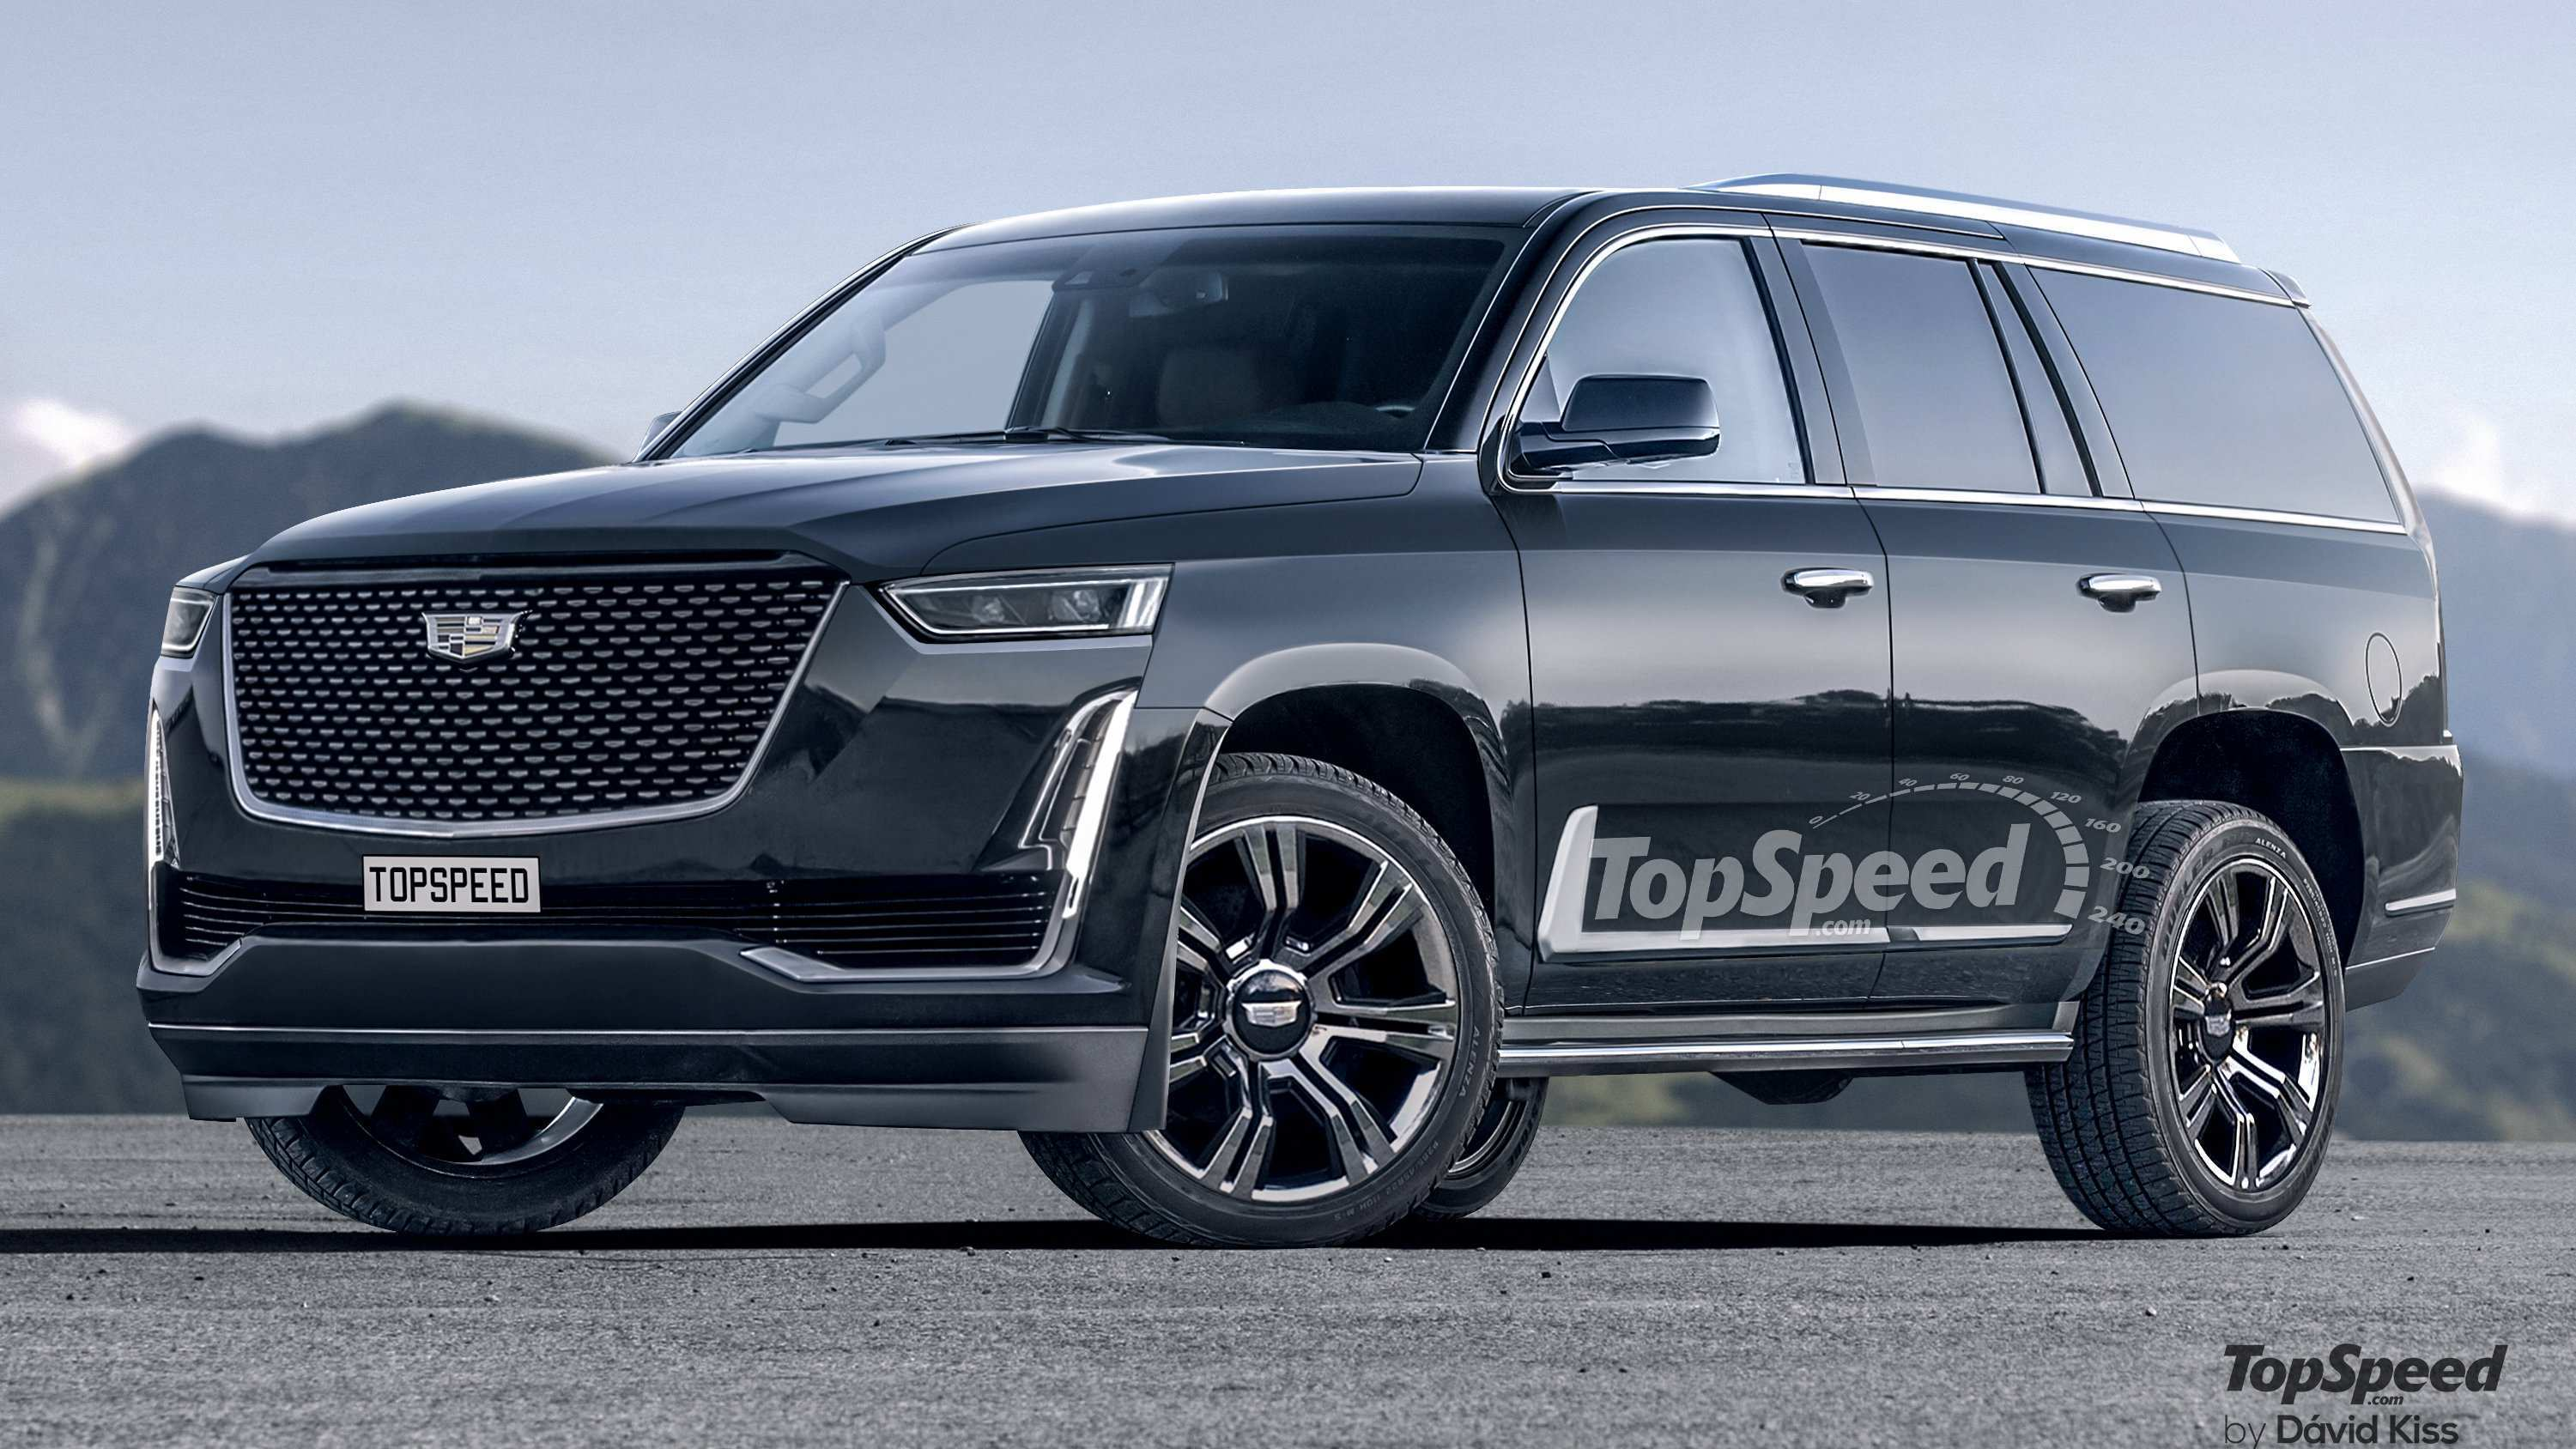 46 All New 2020 Cadillac Escalade V Ext Esv Price with 2020 Cadillac Escalade V Ext Esv